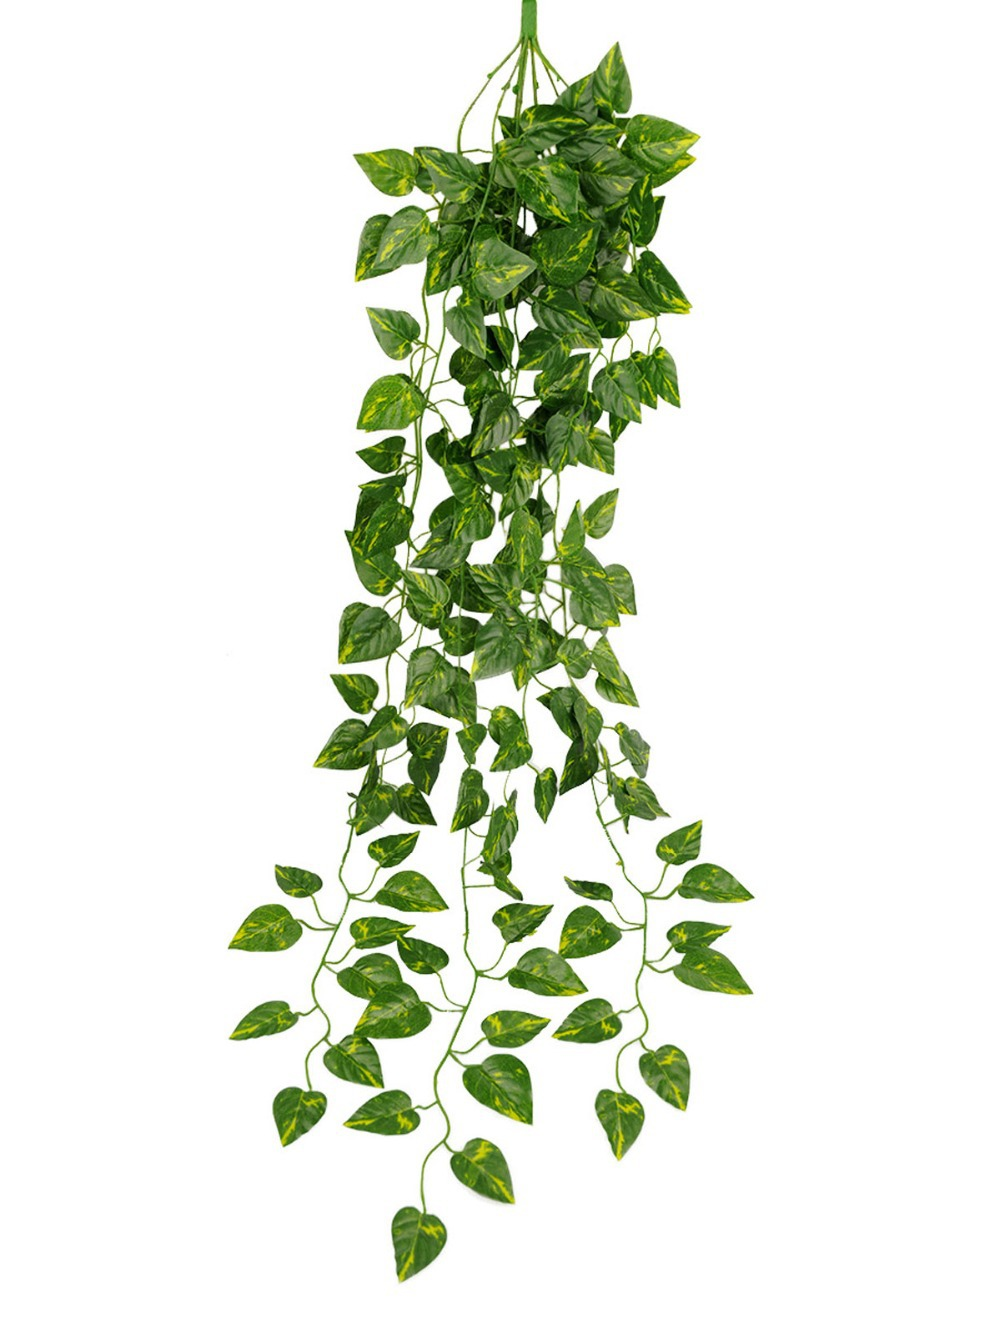 2 Pcs/Lot Artificial Green Garden Plant Simulation Hanging Vine Plant Leaves Garland Home Garden Wall Decoration(China (Mainland))